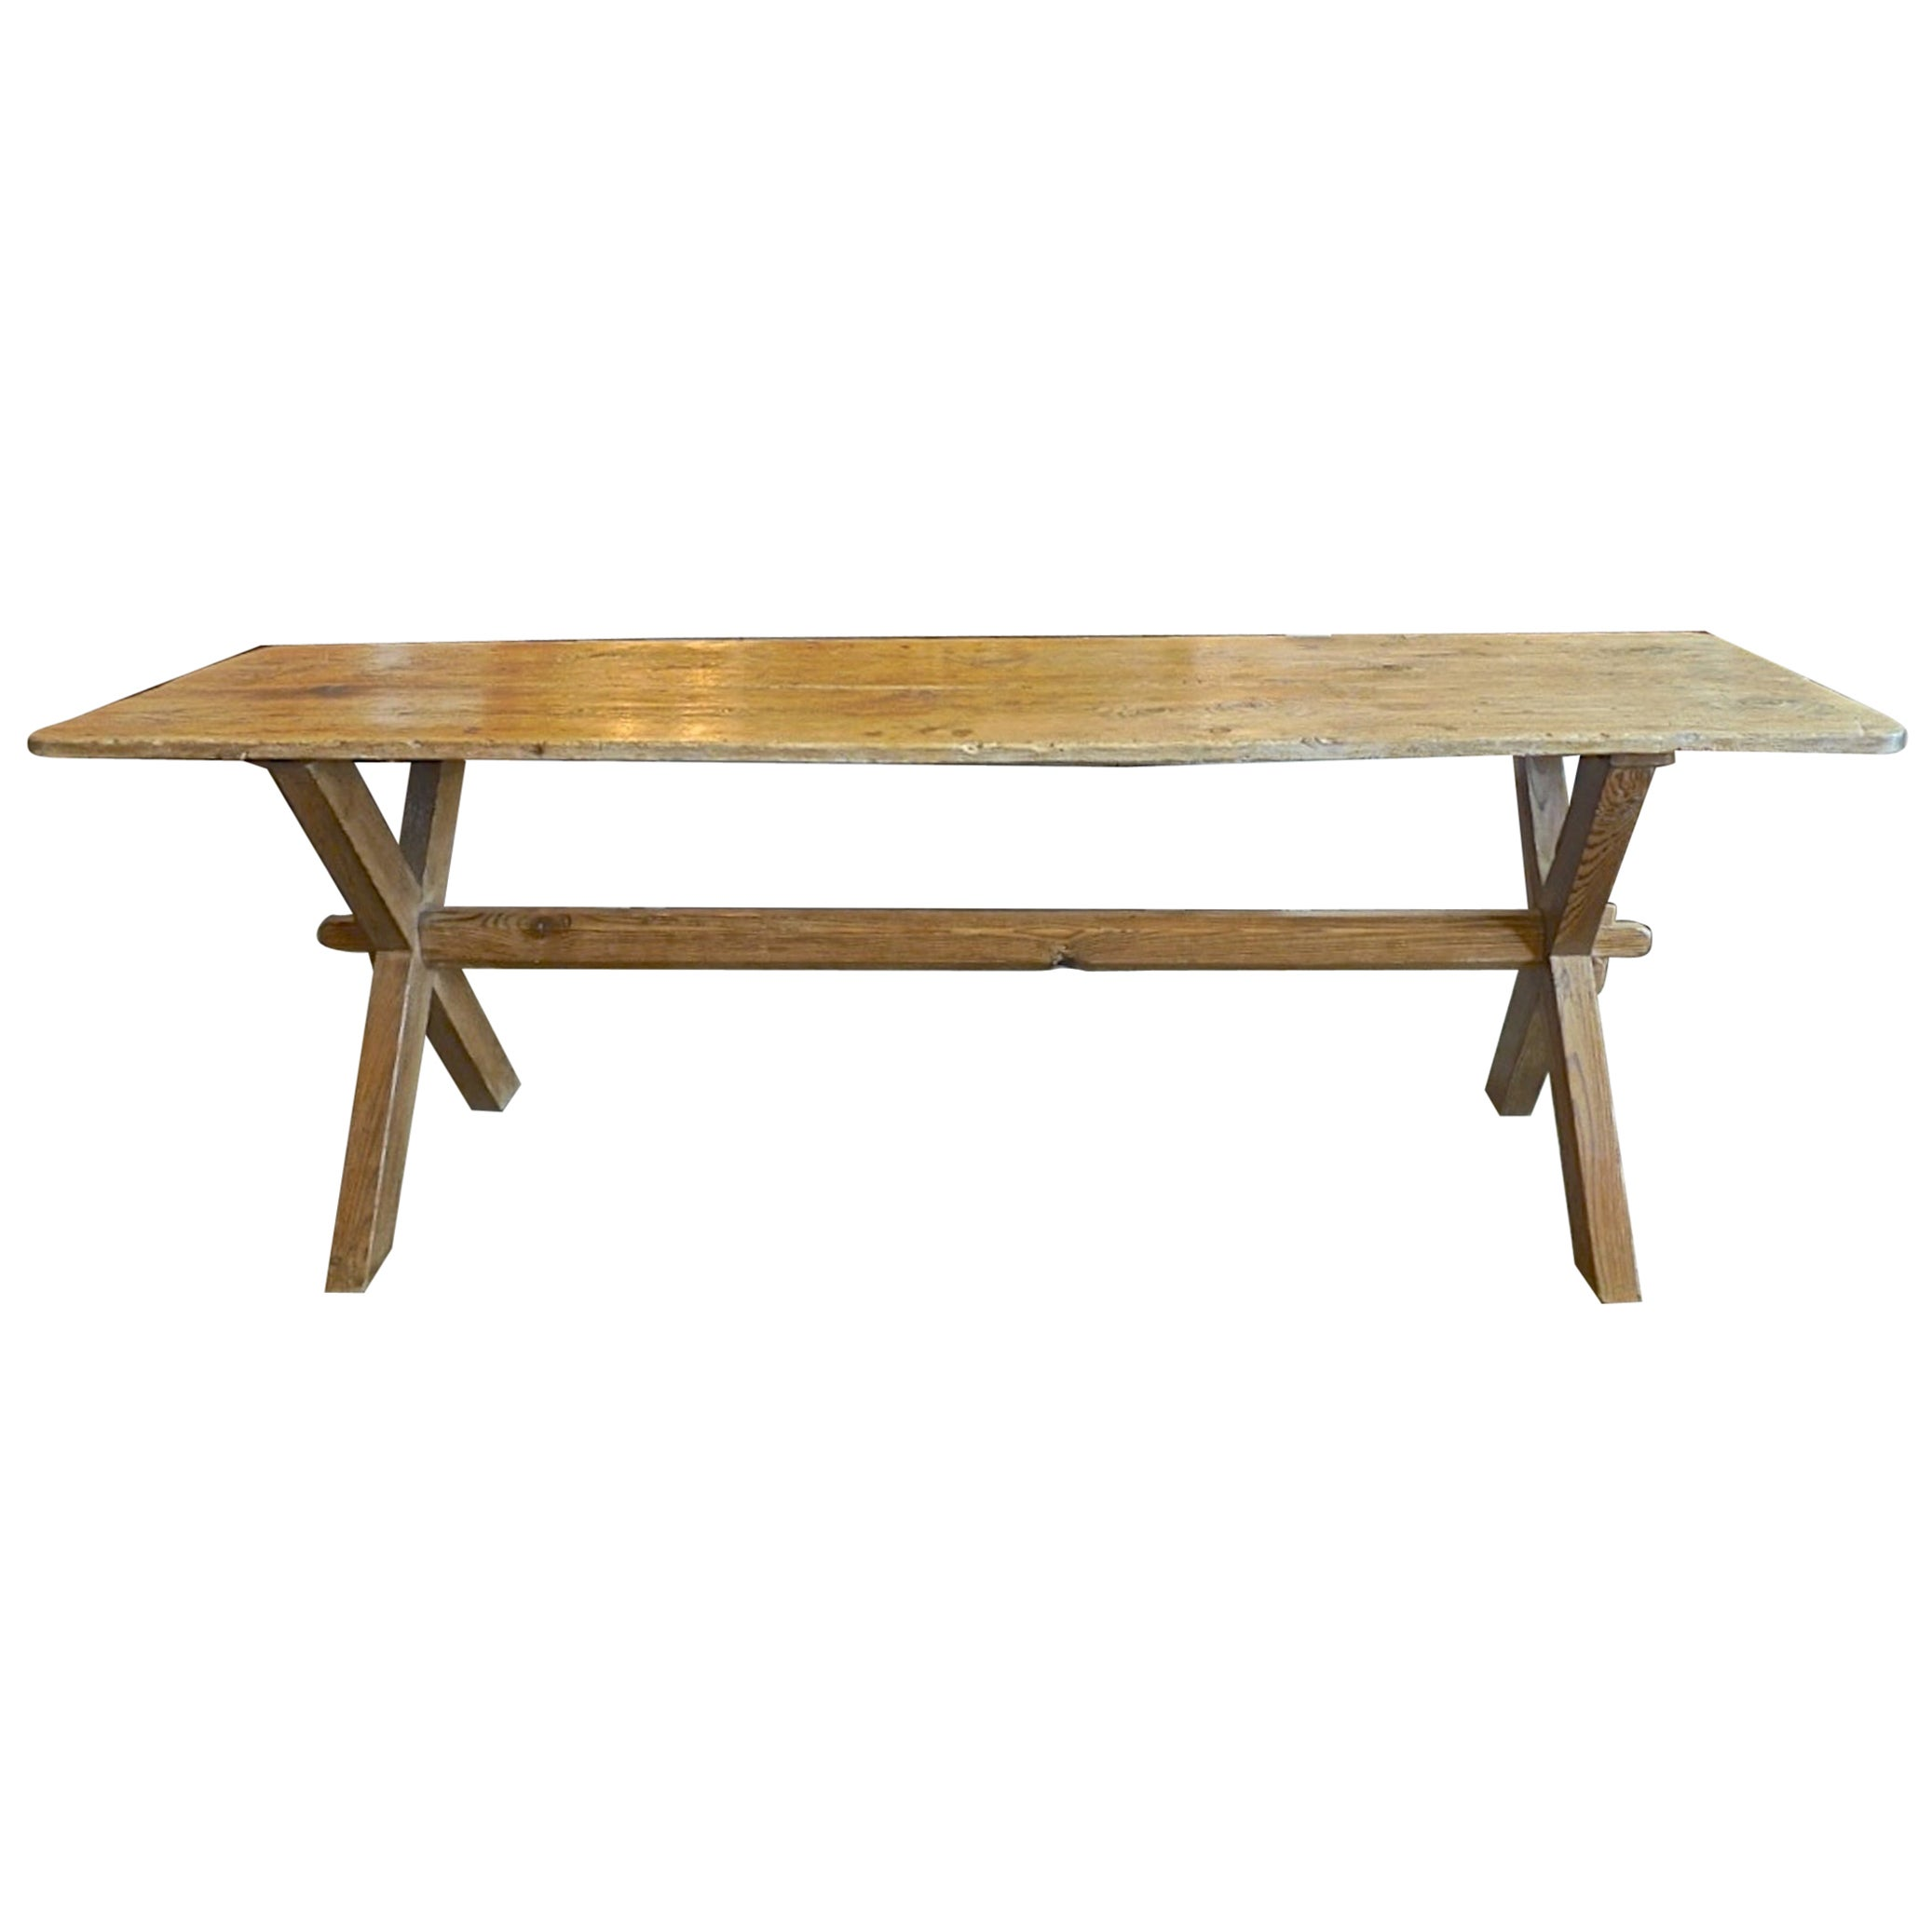 English 19th Century Country Pine Trestle Console Table